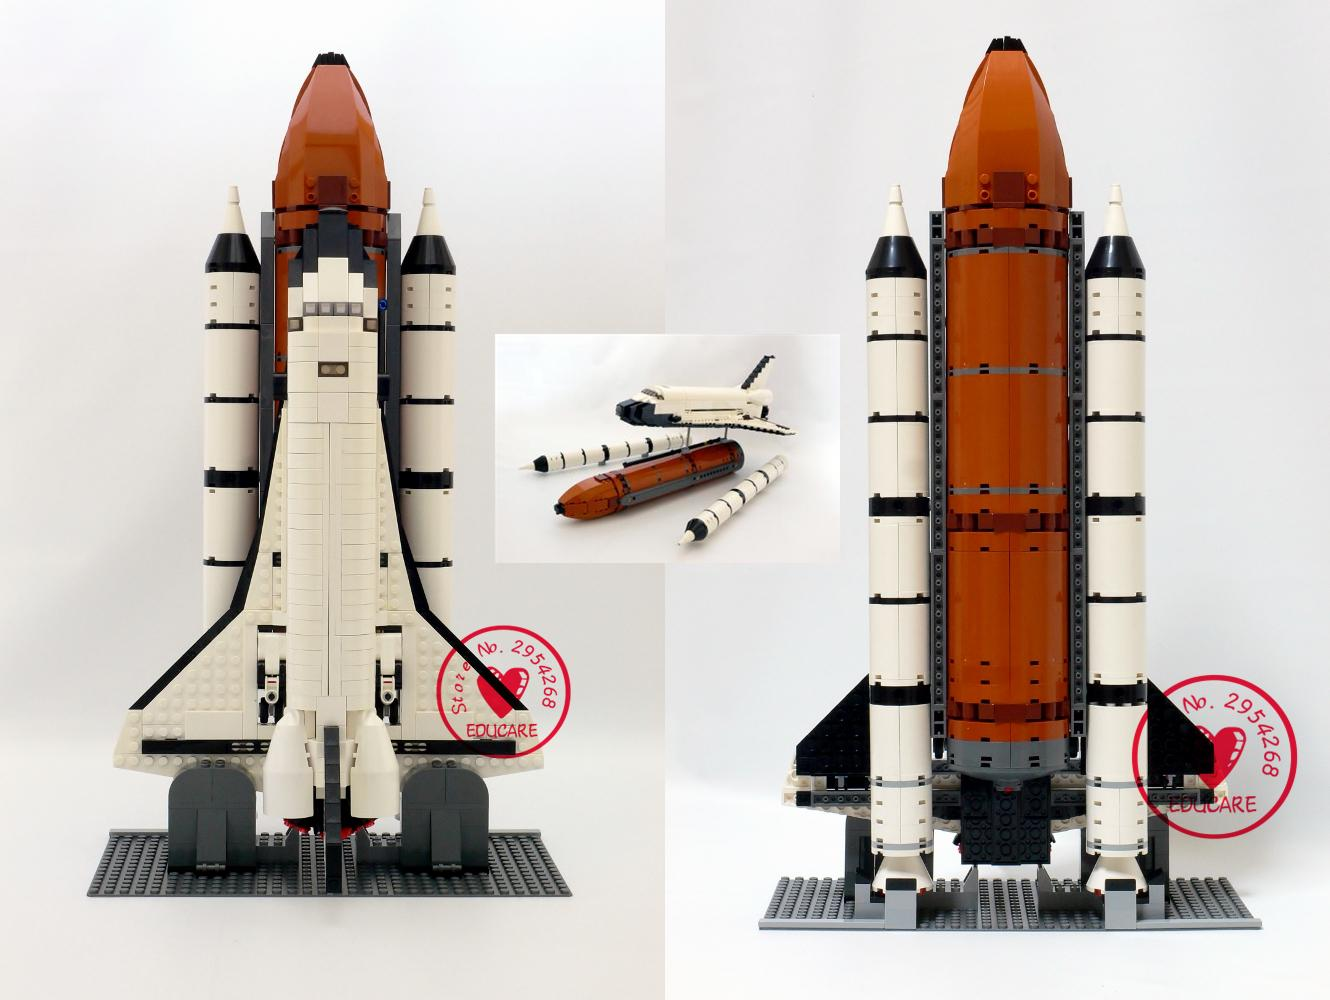 16014 1230Pcs Space Shuttle Expedition Model Building Kits Set Blocks Bricks Compatible with lego kid gift set lepin lepin 16014 1230pcs space shuttle expedition model building kits set blocks bricks compatible with lego gift kid children toy